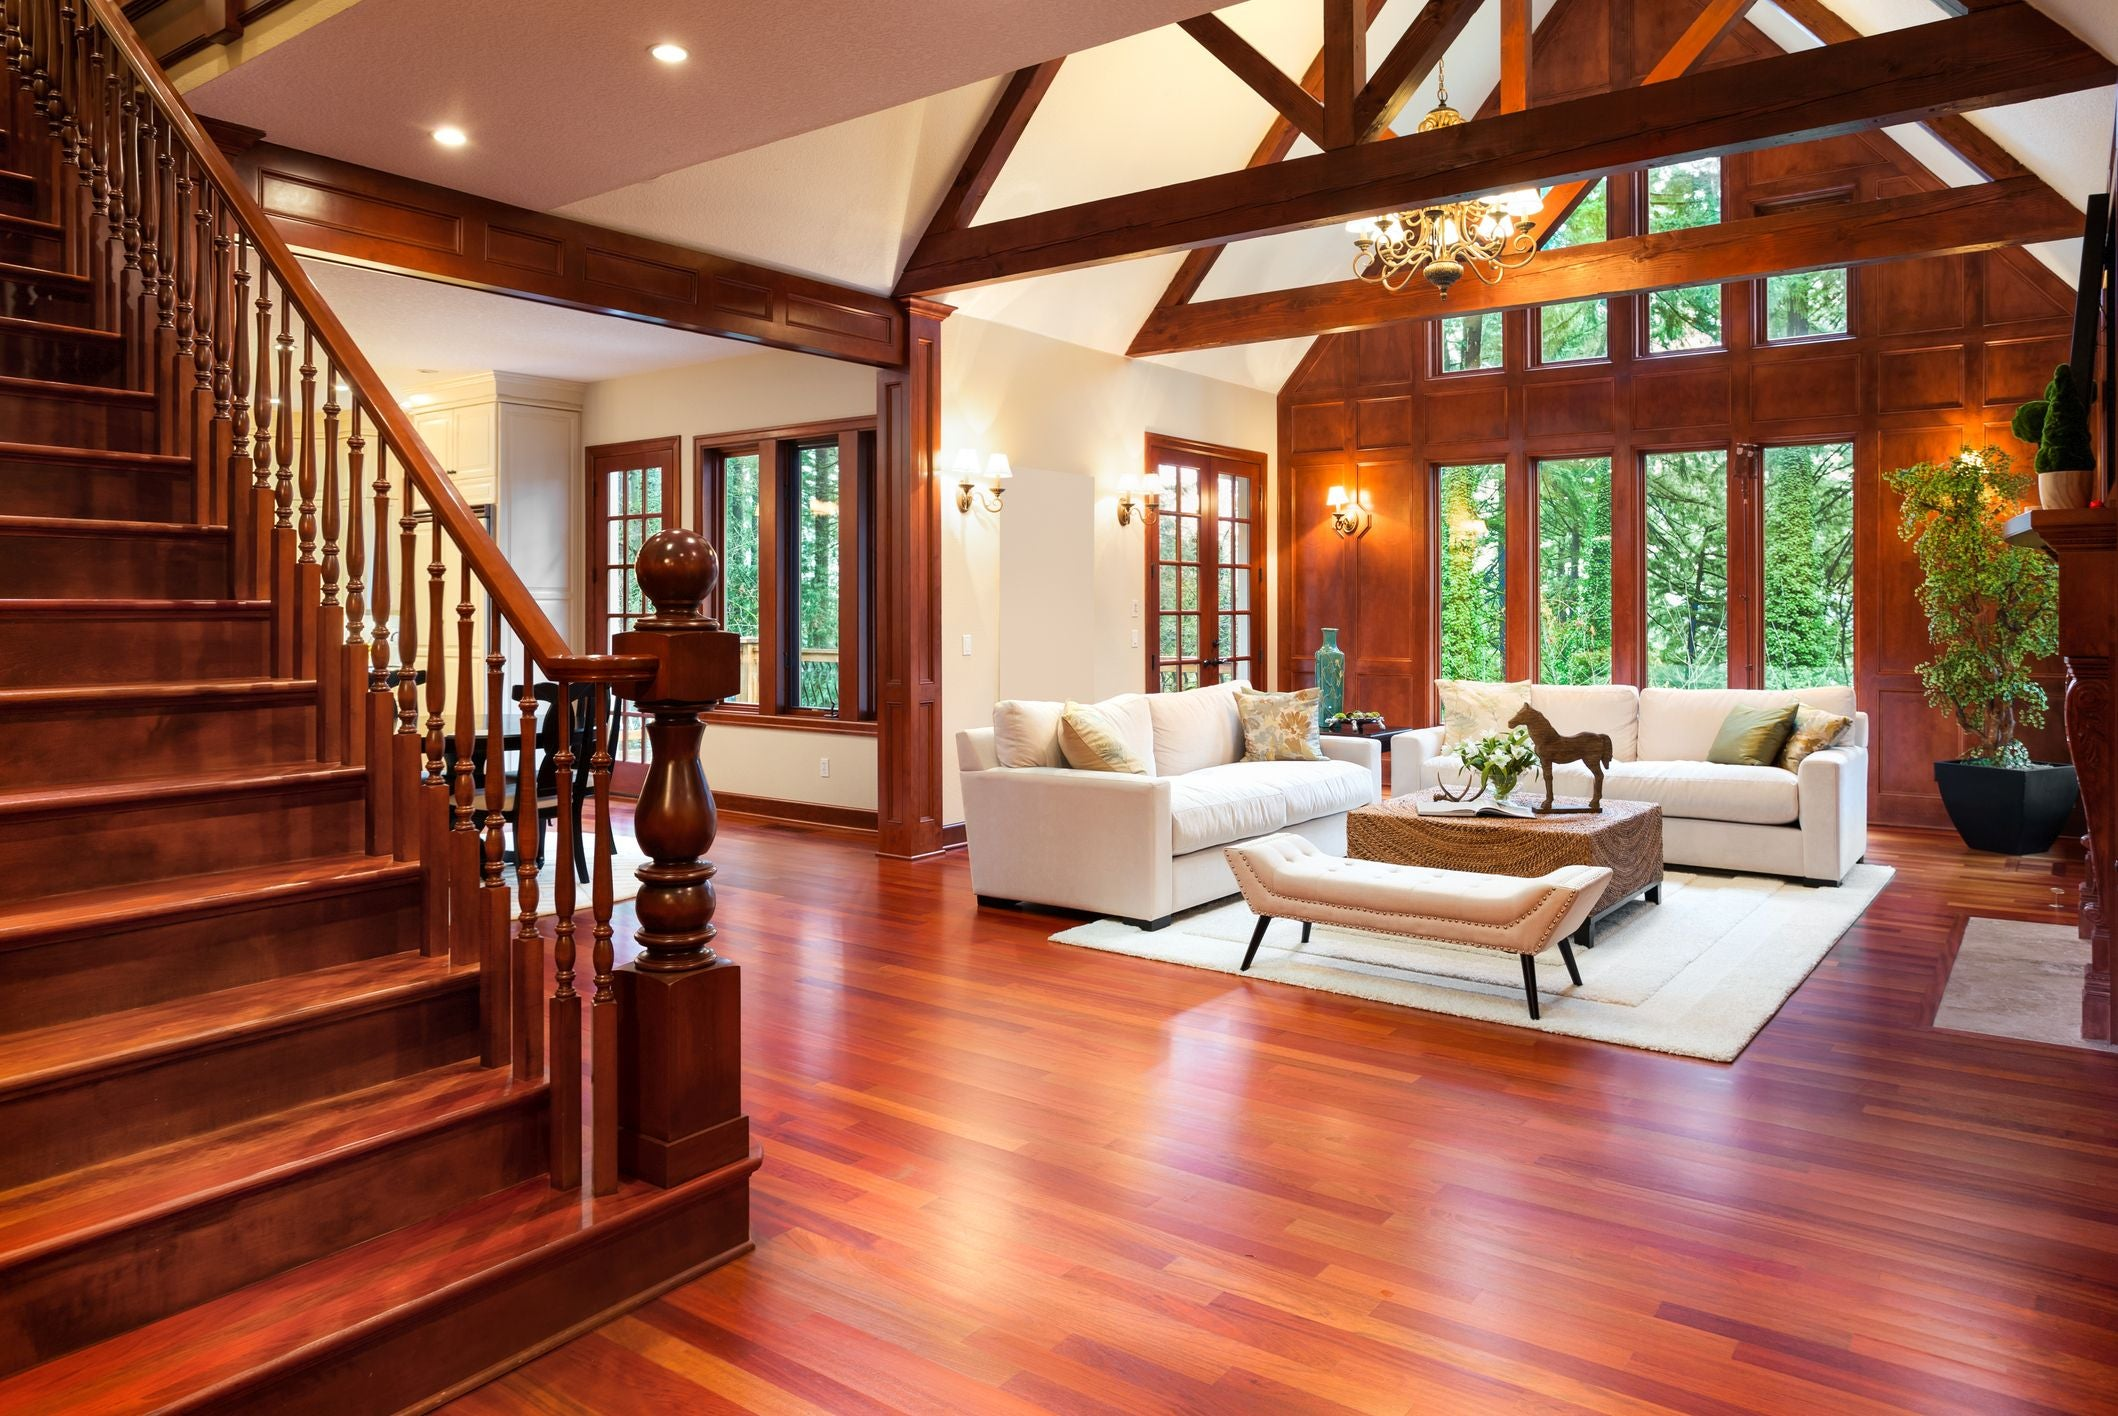 Interior of a fancy home.